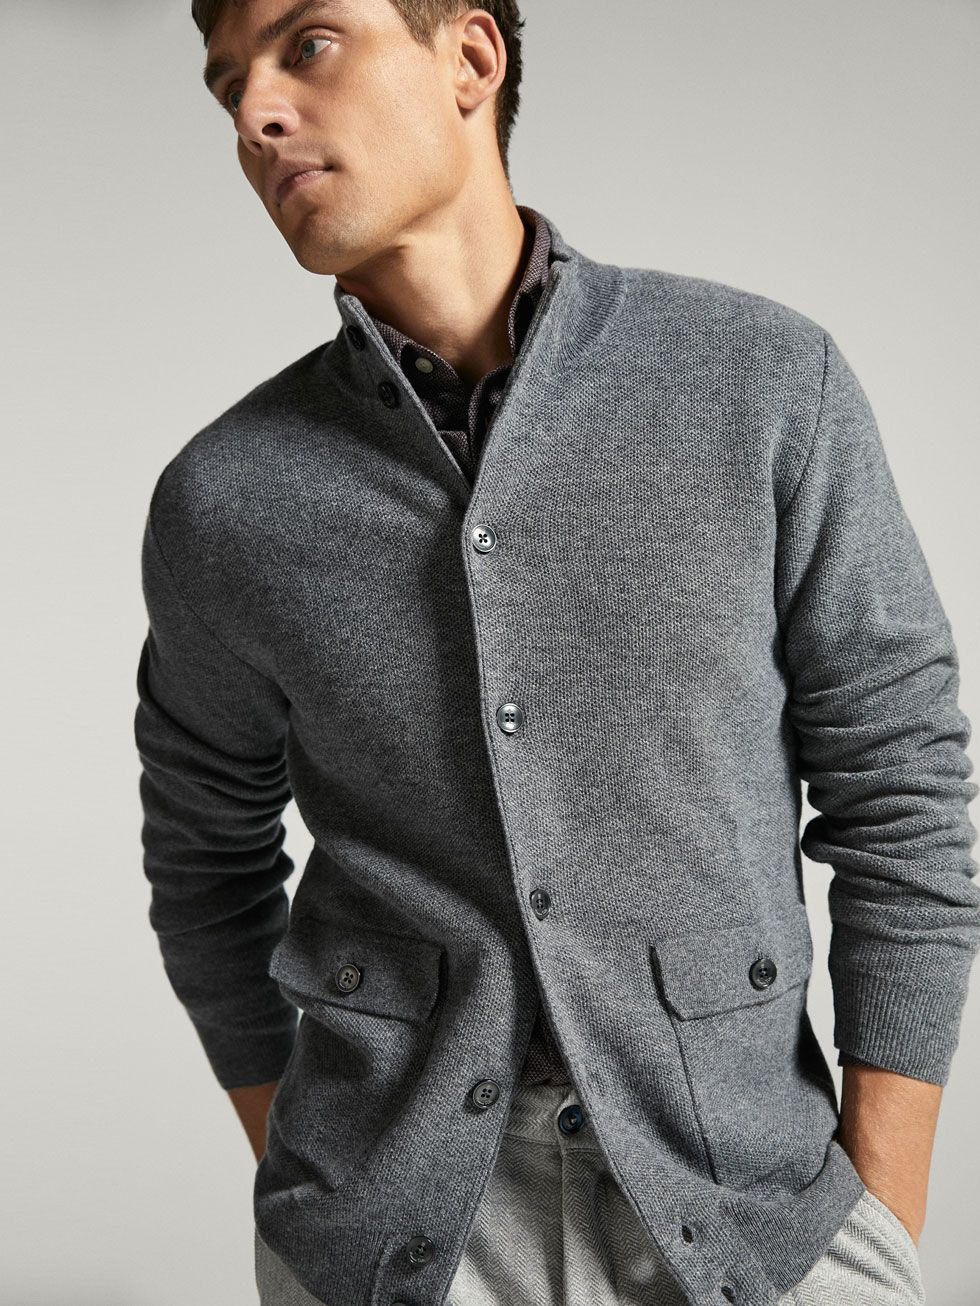 WOOL/CASHMERE TEXTURED WEAVE CARDIGAN - Men - Massimo Dutti | his ...